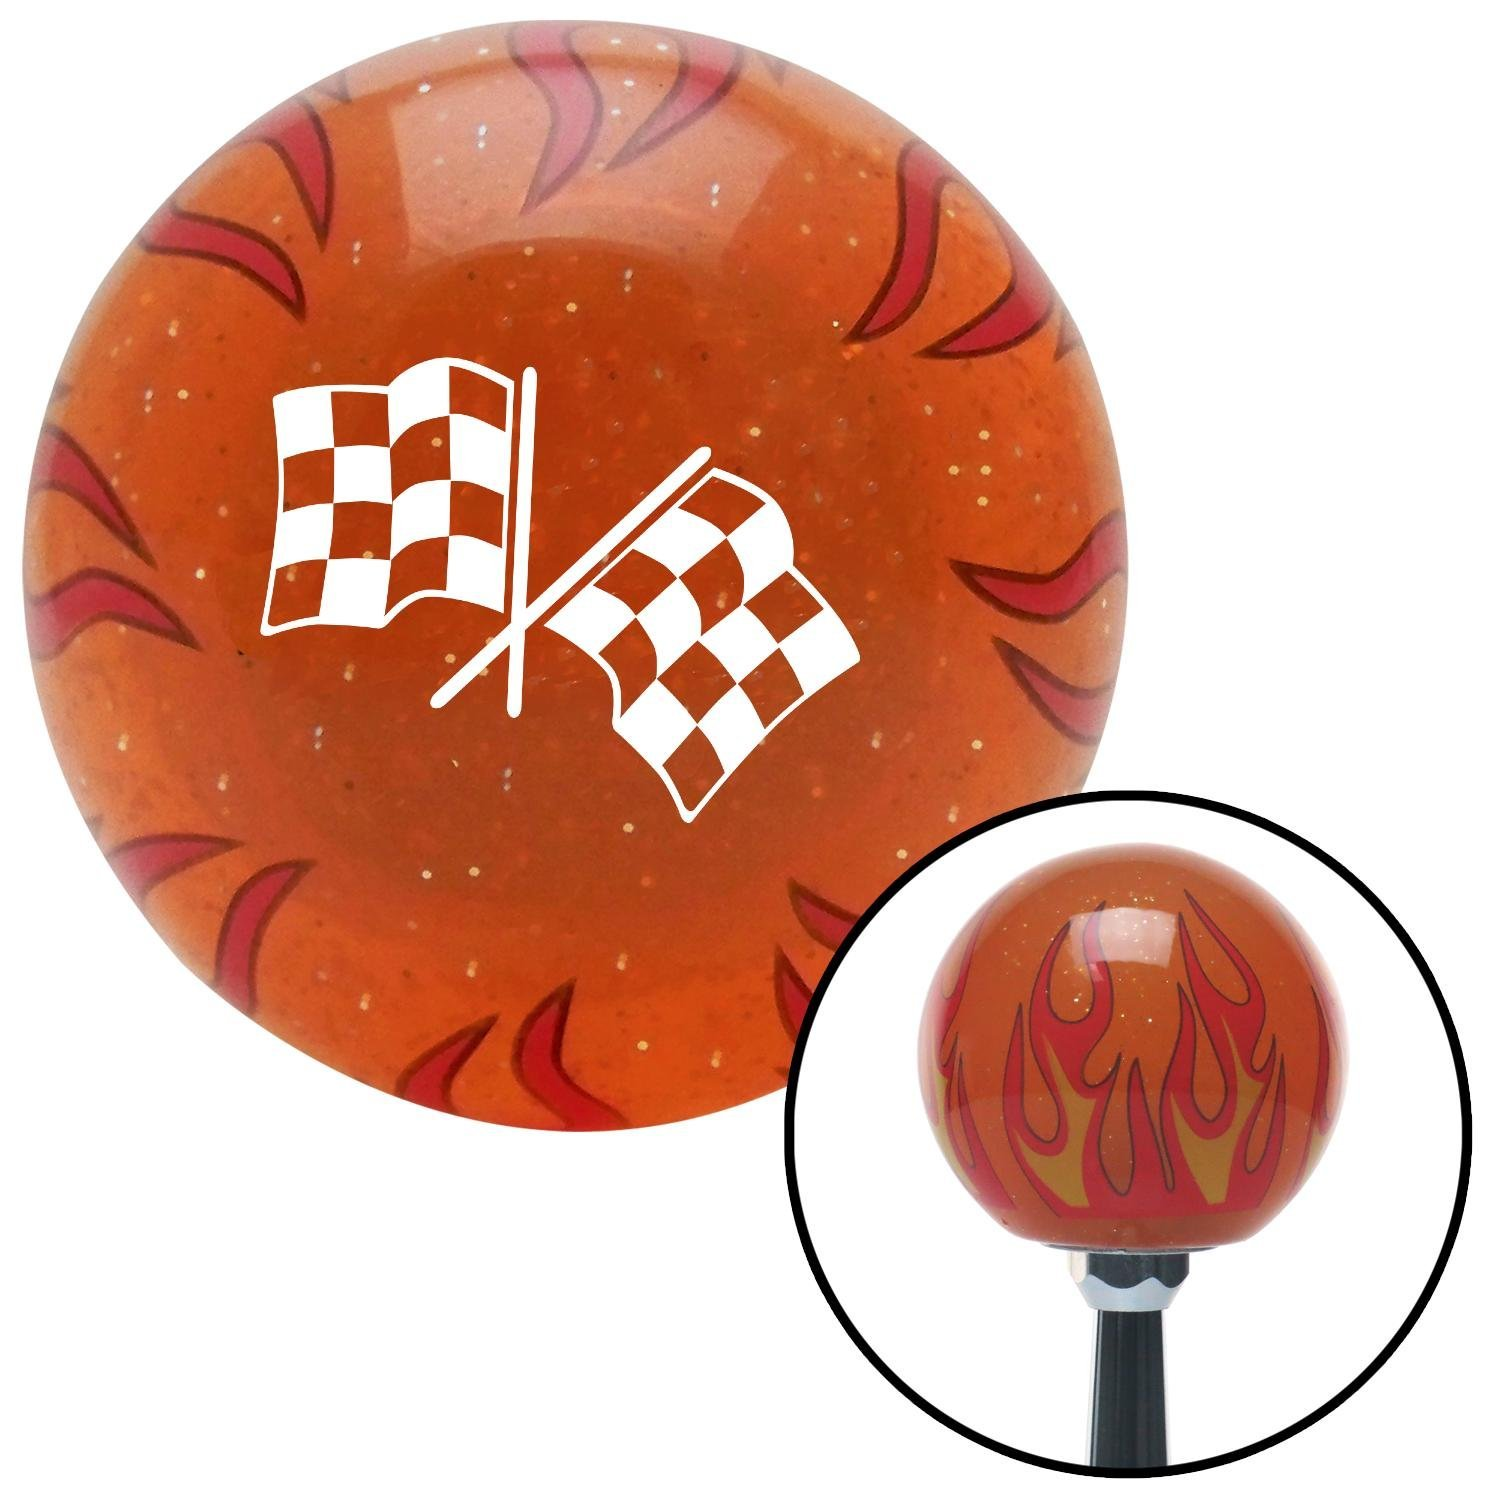 American Shifter 252760 Orange Flame Metal Flake Shift Knob with M16 x 1.5 Insert White Dual Checkered Flags